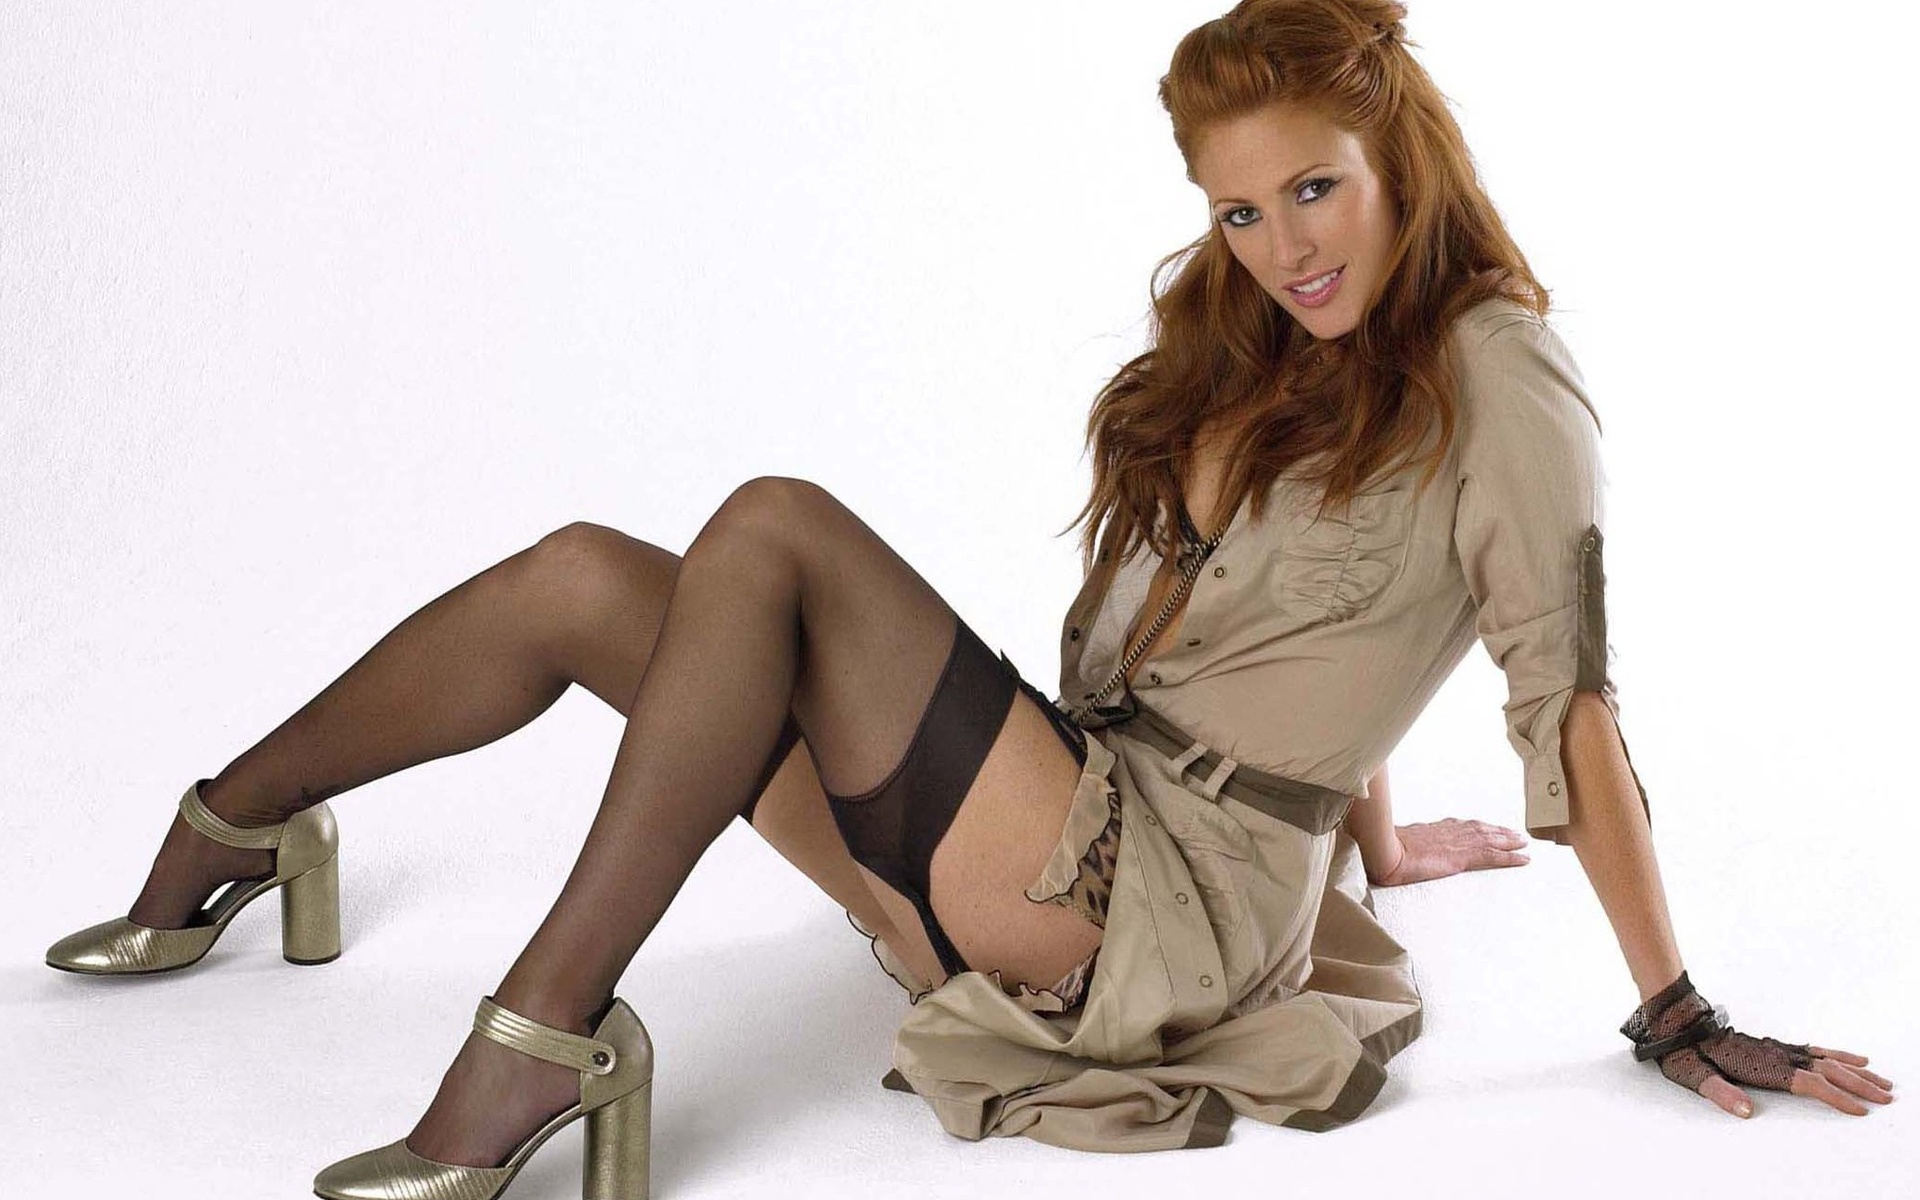 Lindy booth nude pics